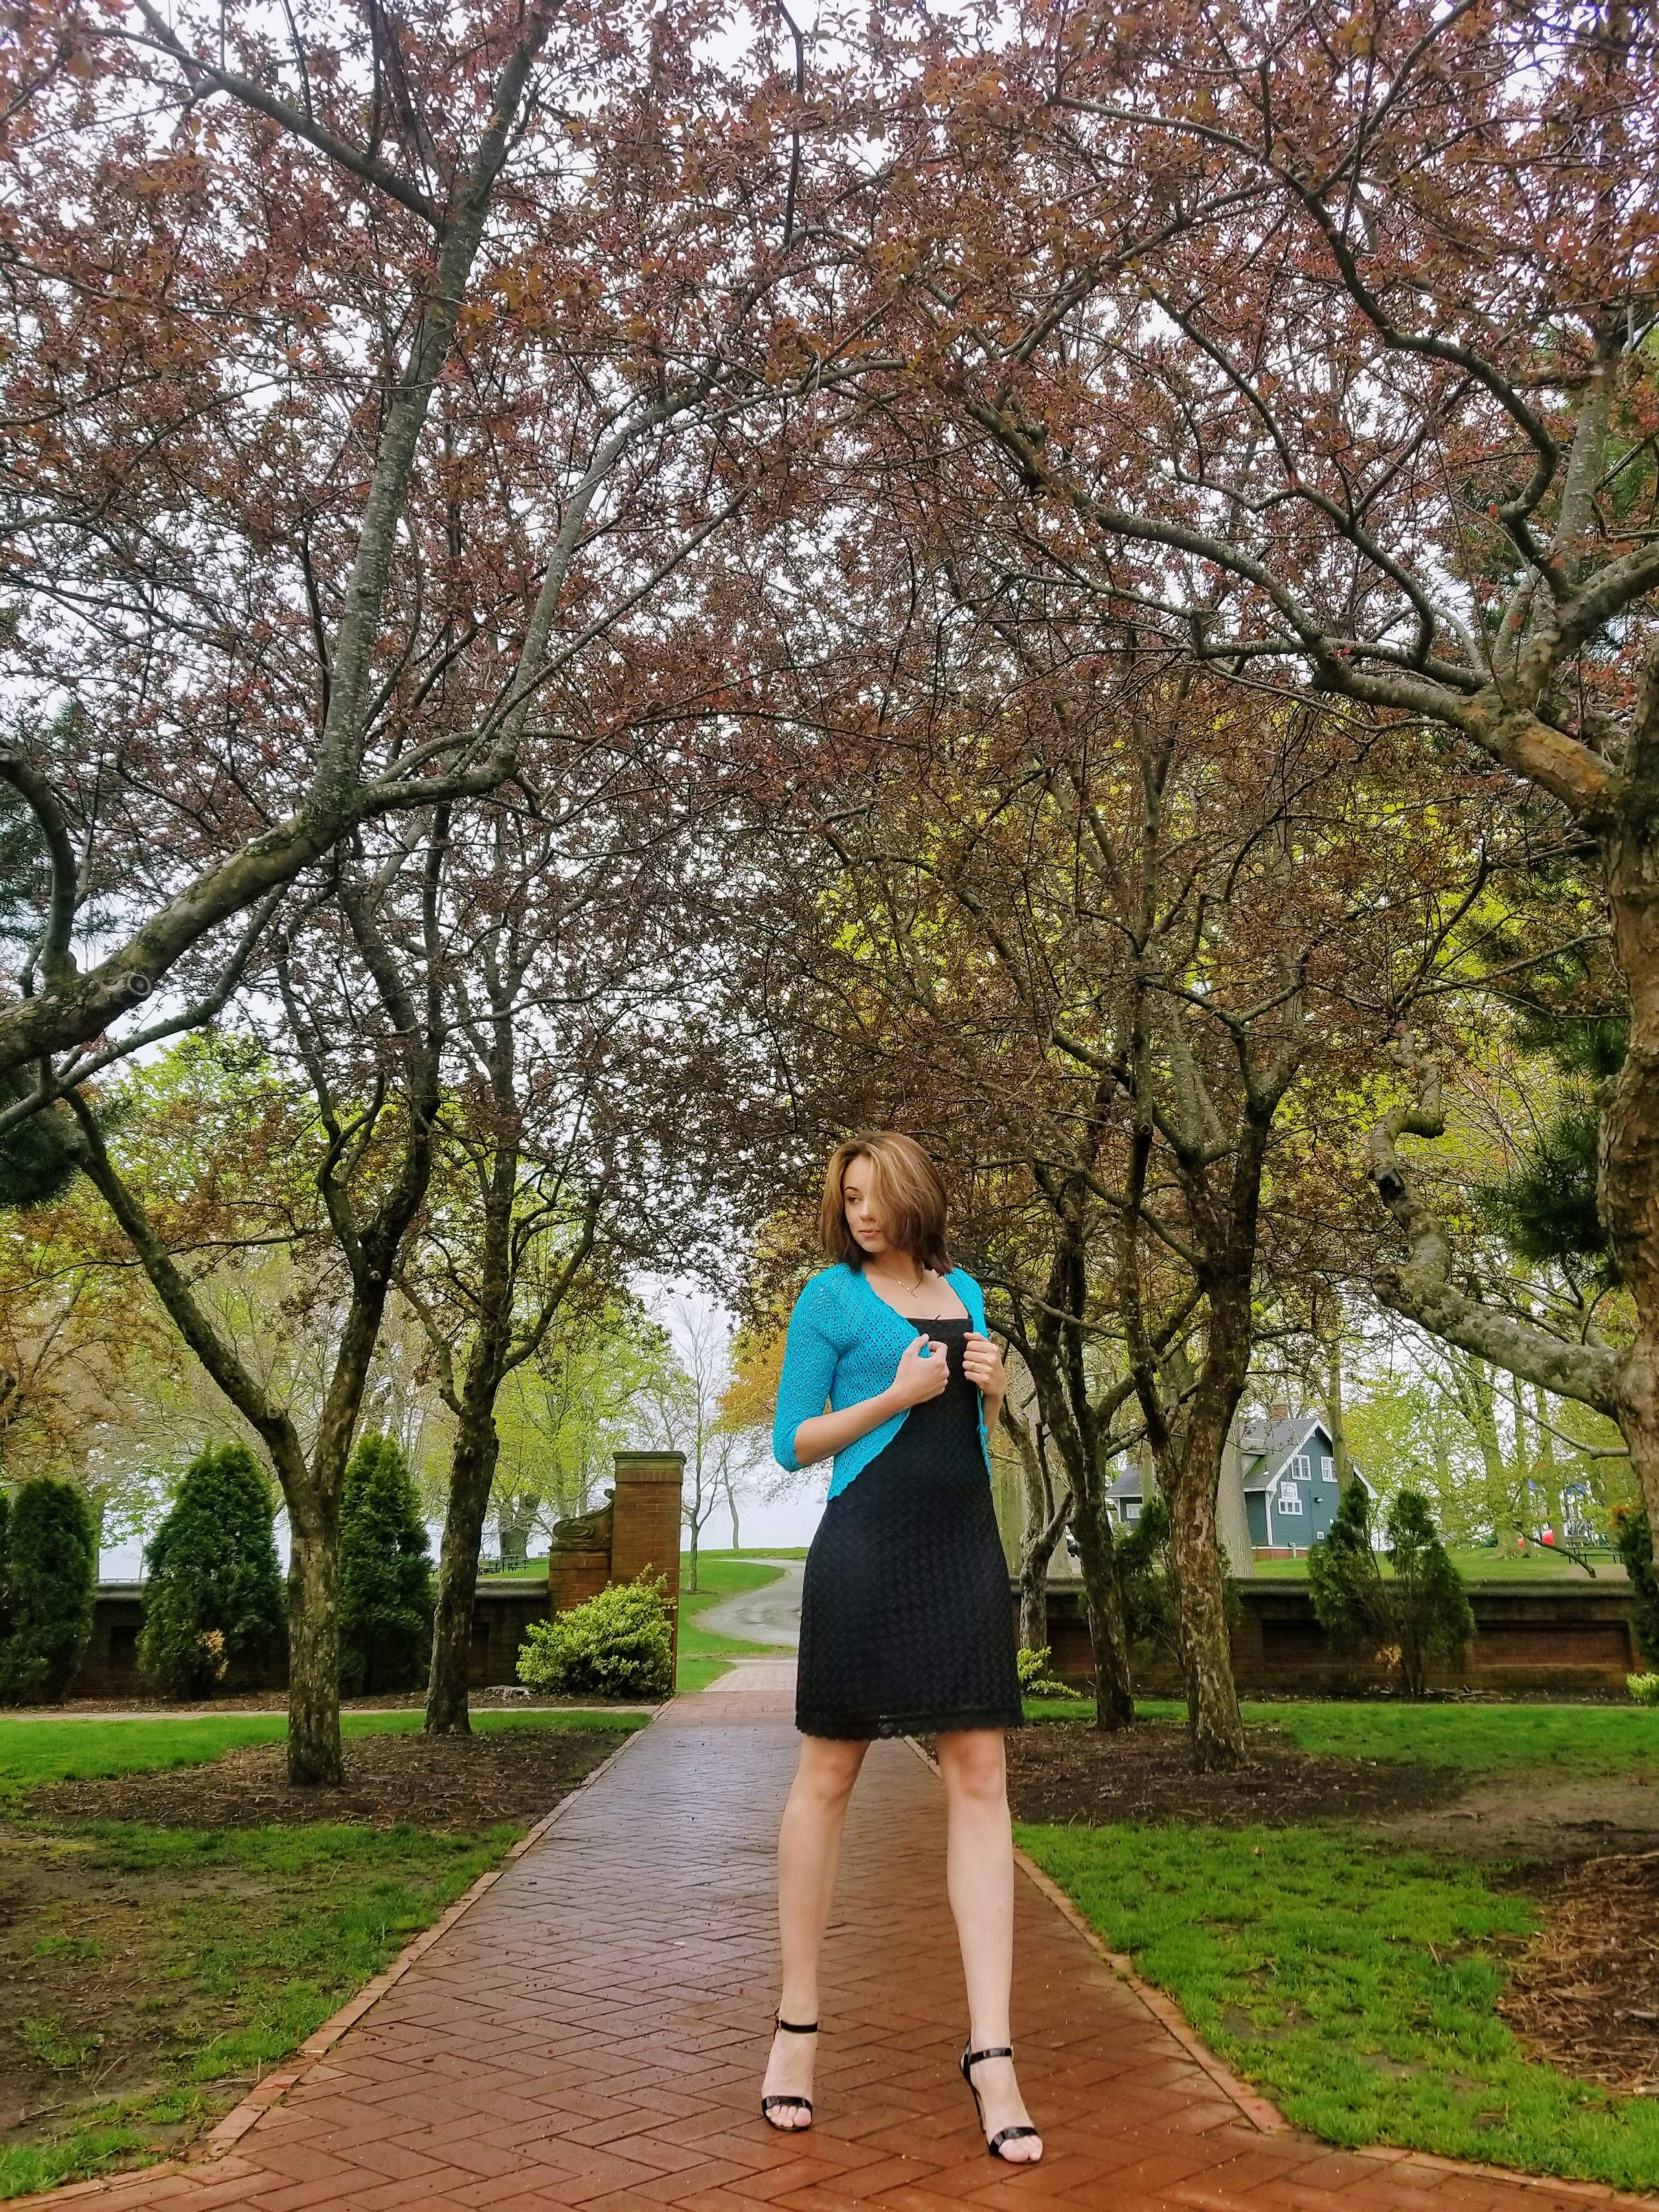 A girl in the garden. She is wearing a little black dress, blue cover-up and black heels.